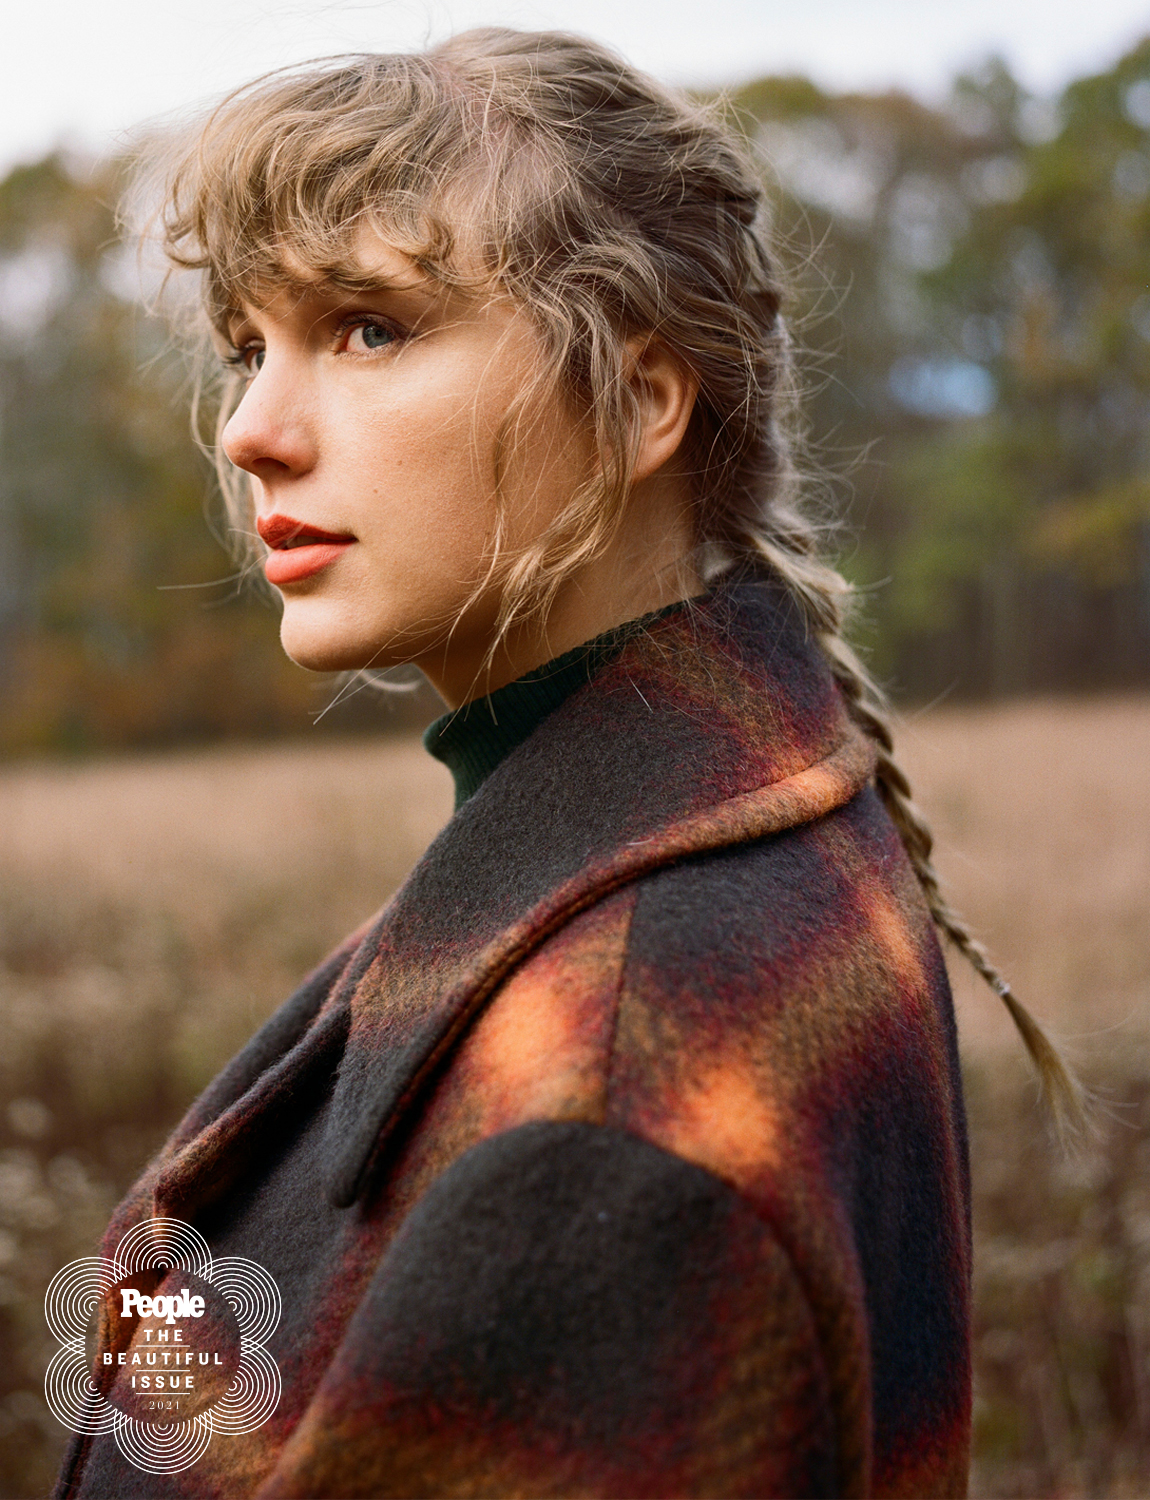 2021 beauties of the year - taylor swift